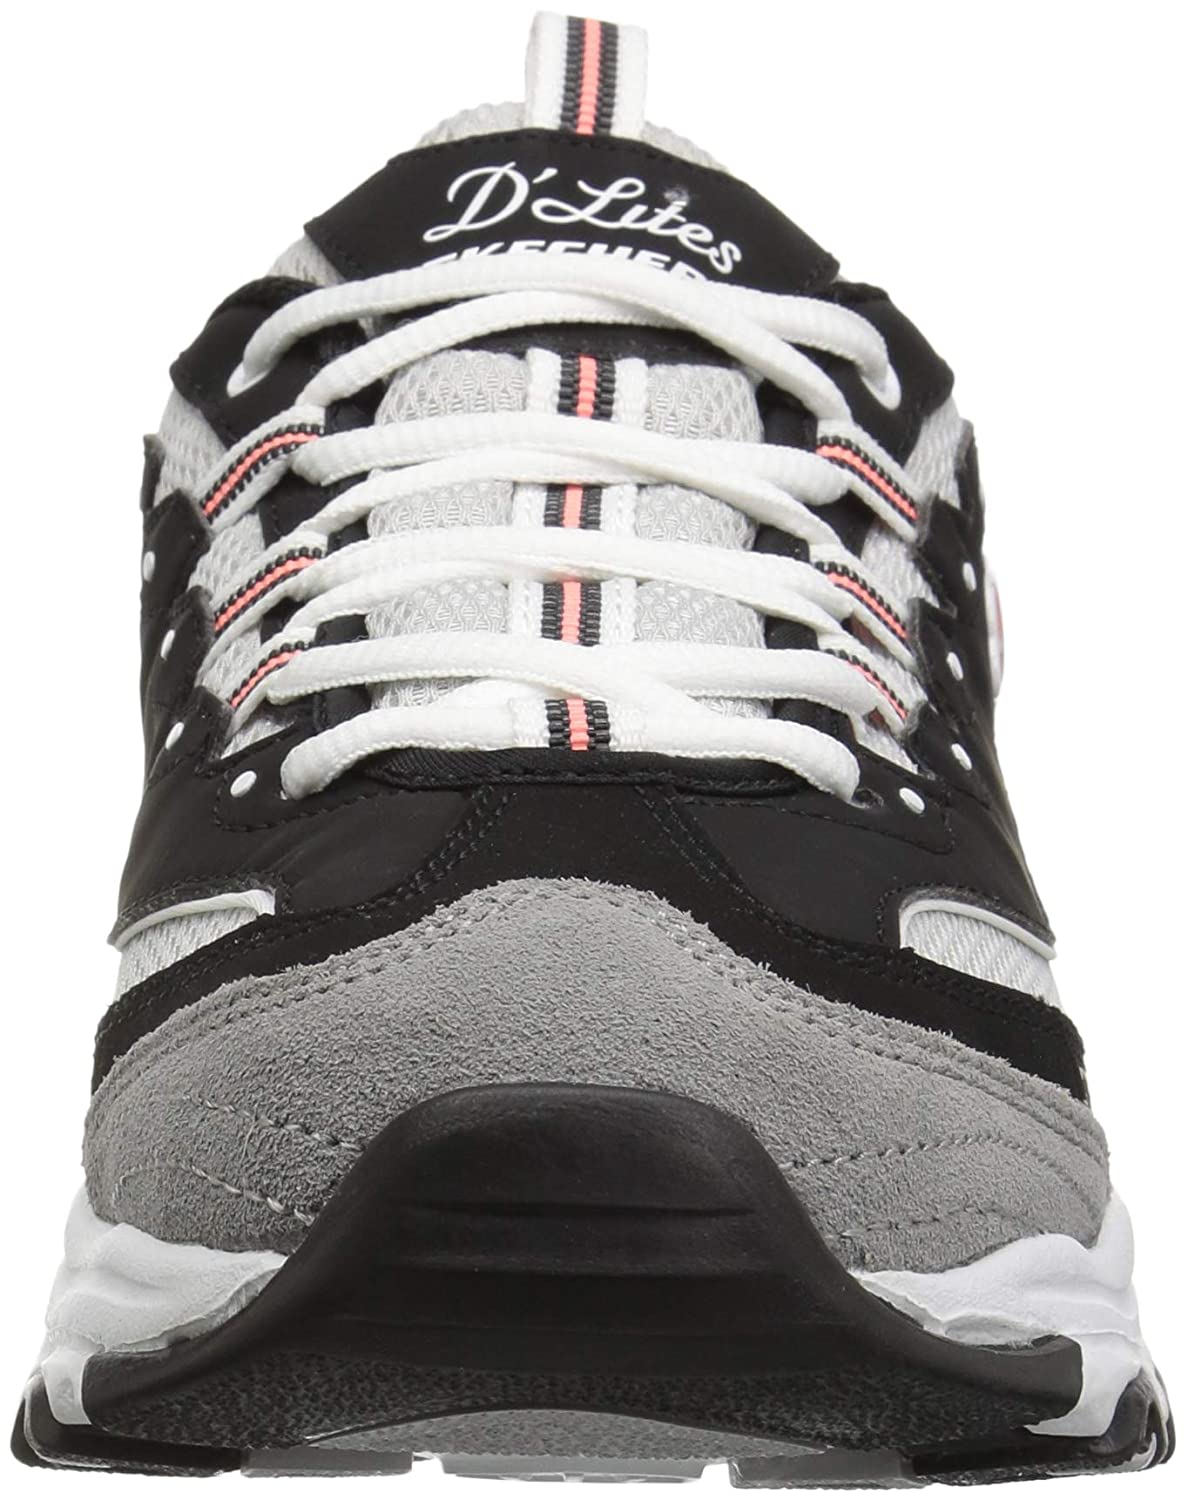 Skechers-D-039-Lites-Women-039-s-Casual-Lightweight-Fashion-Sneakers-Athletic-Shoes thumbnail 135